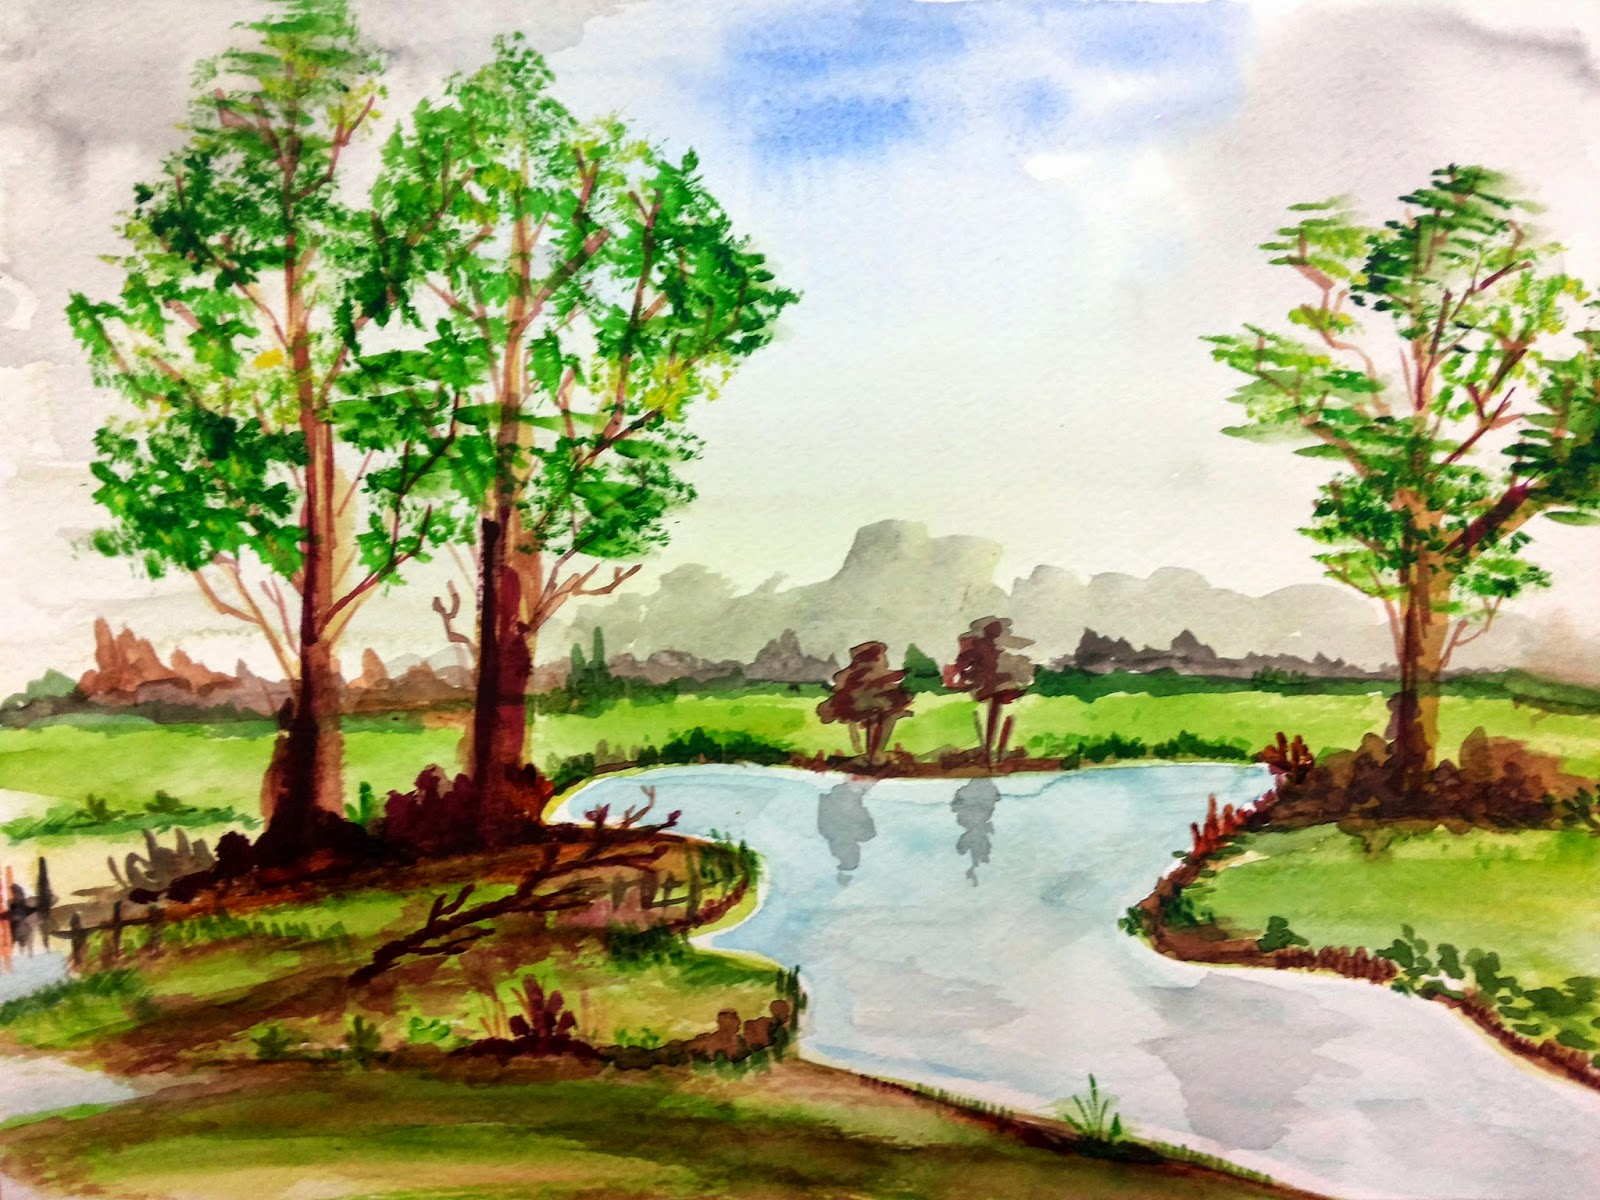 landscape, scenery, illustration, nature, view, painting, watercolour, watercolors, watercolor, scene, trees, river, village